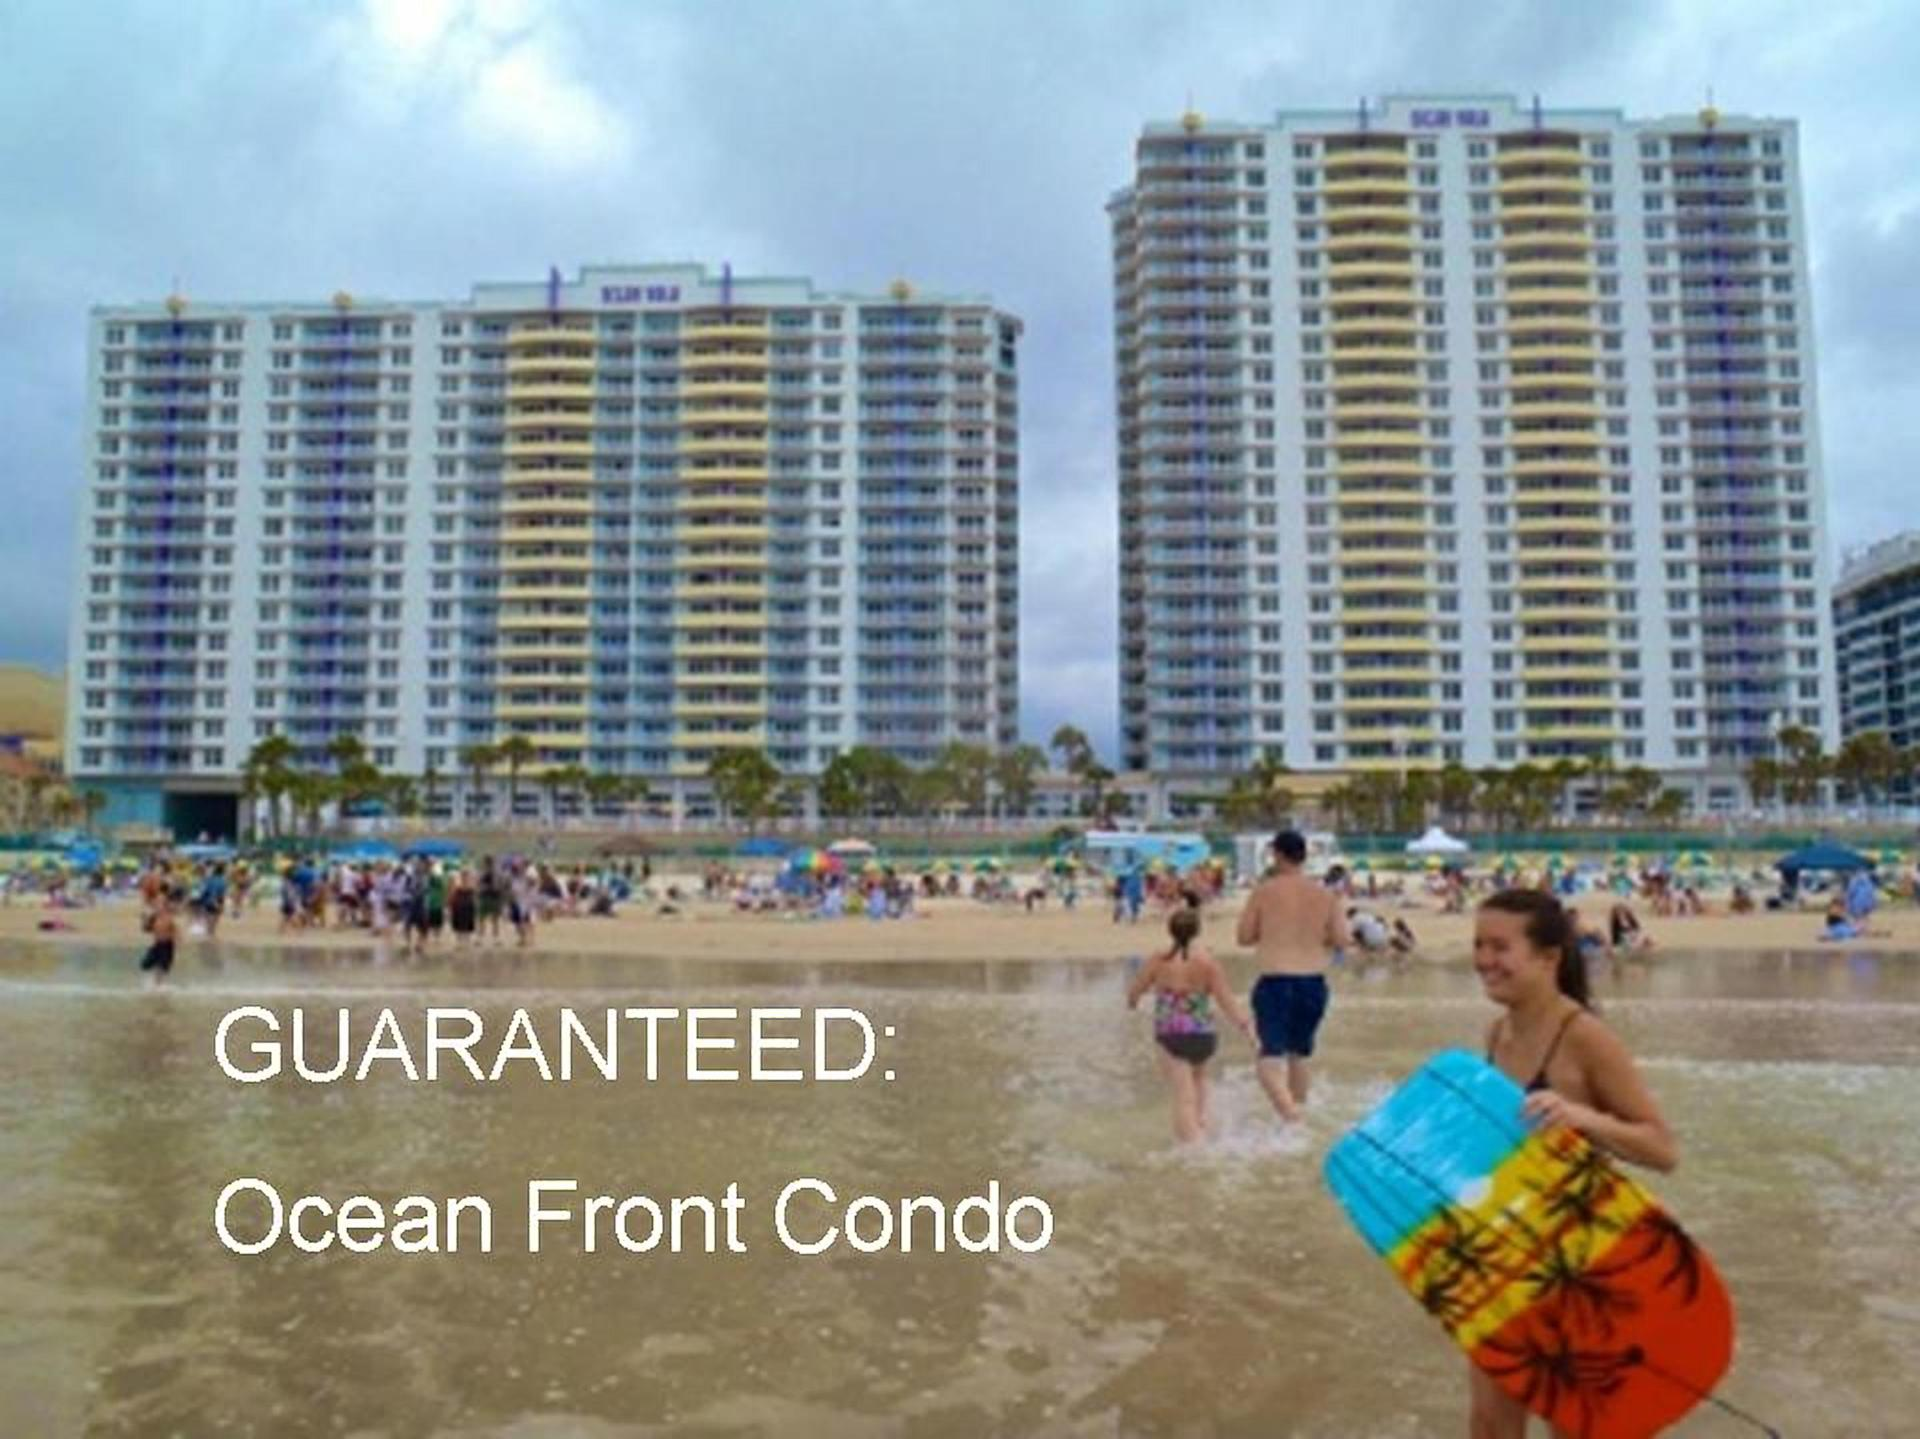 Wyndham Condo Daytona Beach Florida